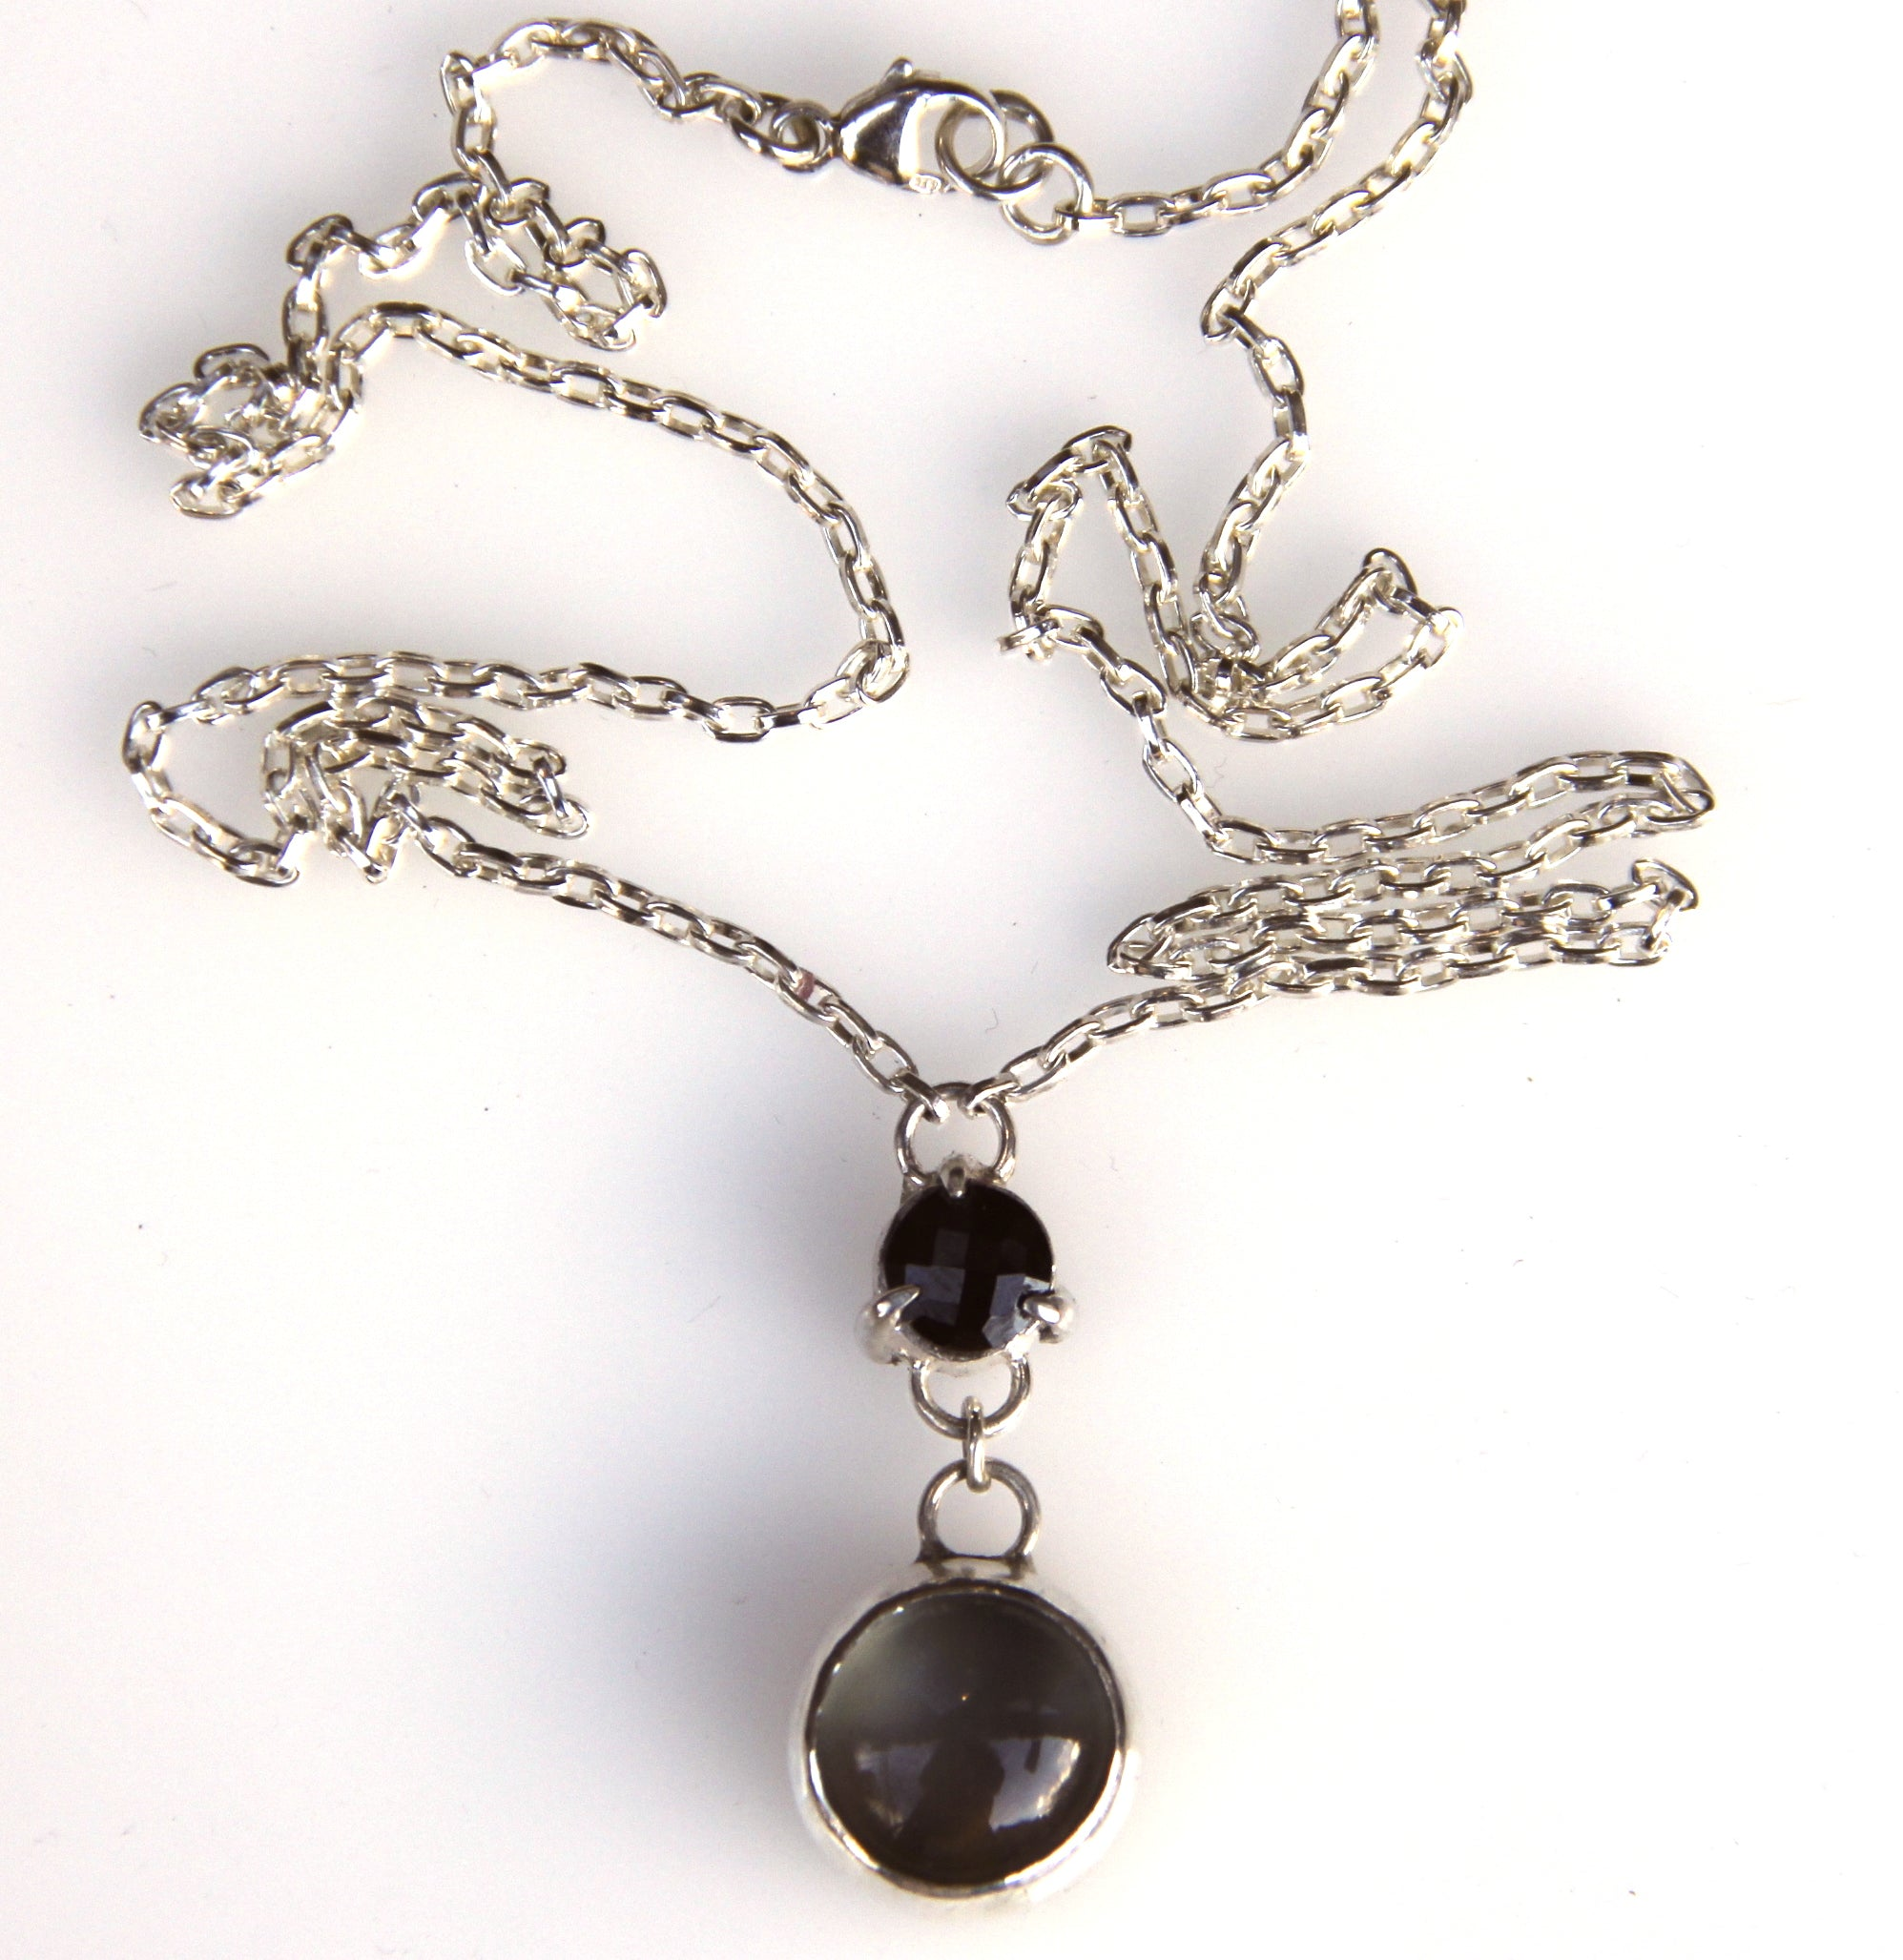 Moonstone and Black Spinel Necklace